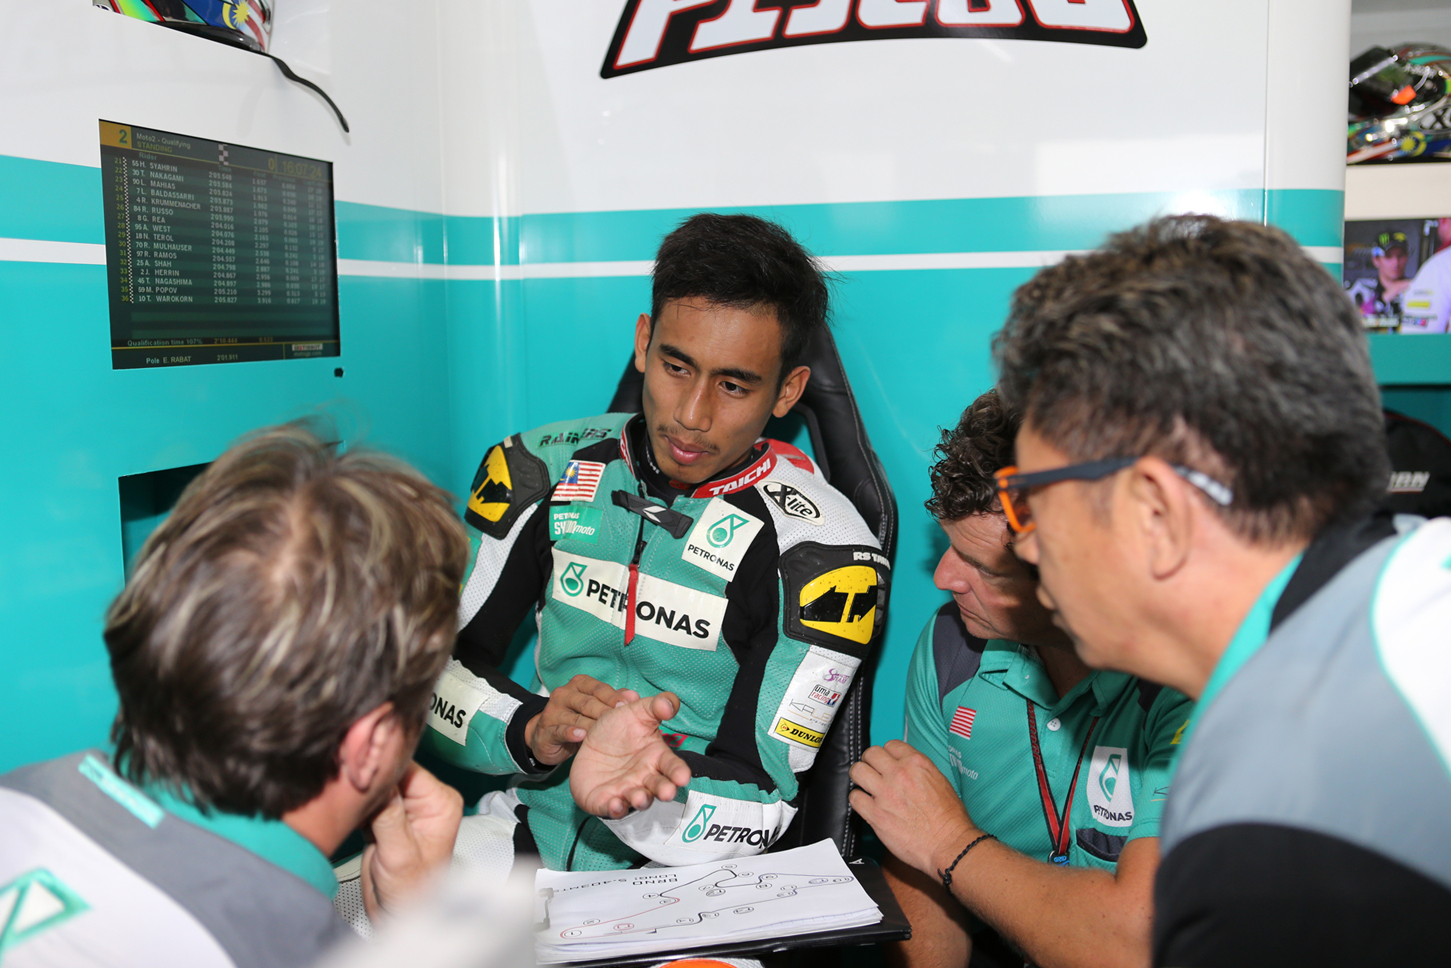 Merdeka gift from Hafizh with eighth spot at Silverstone